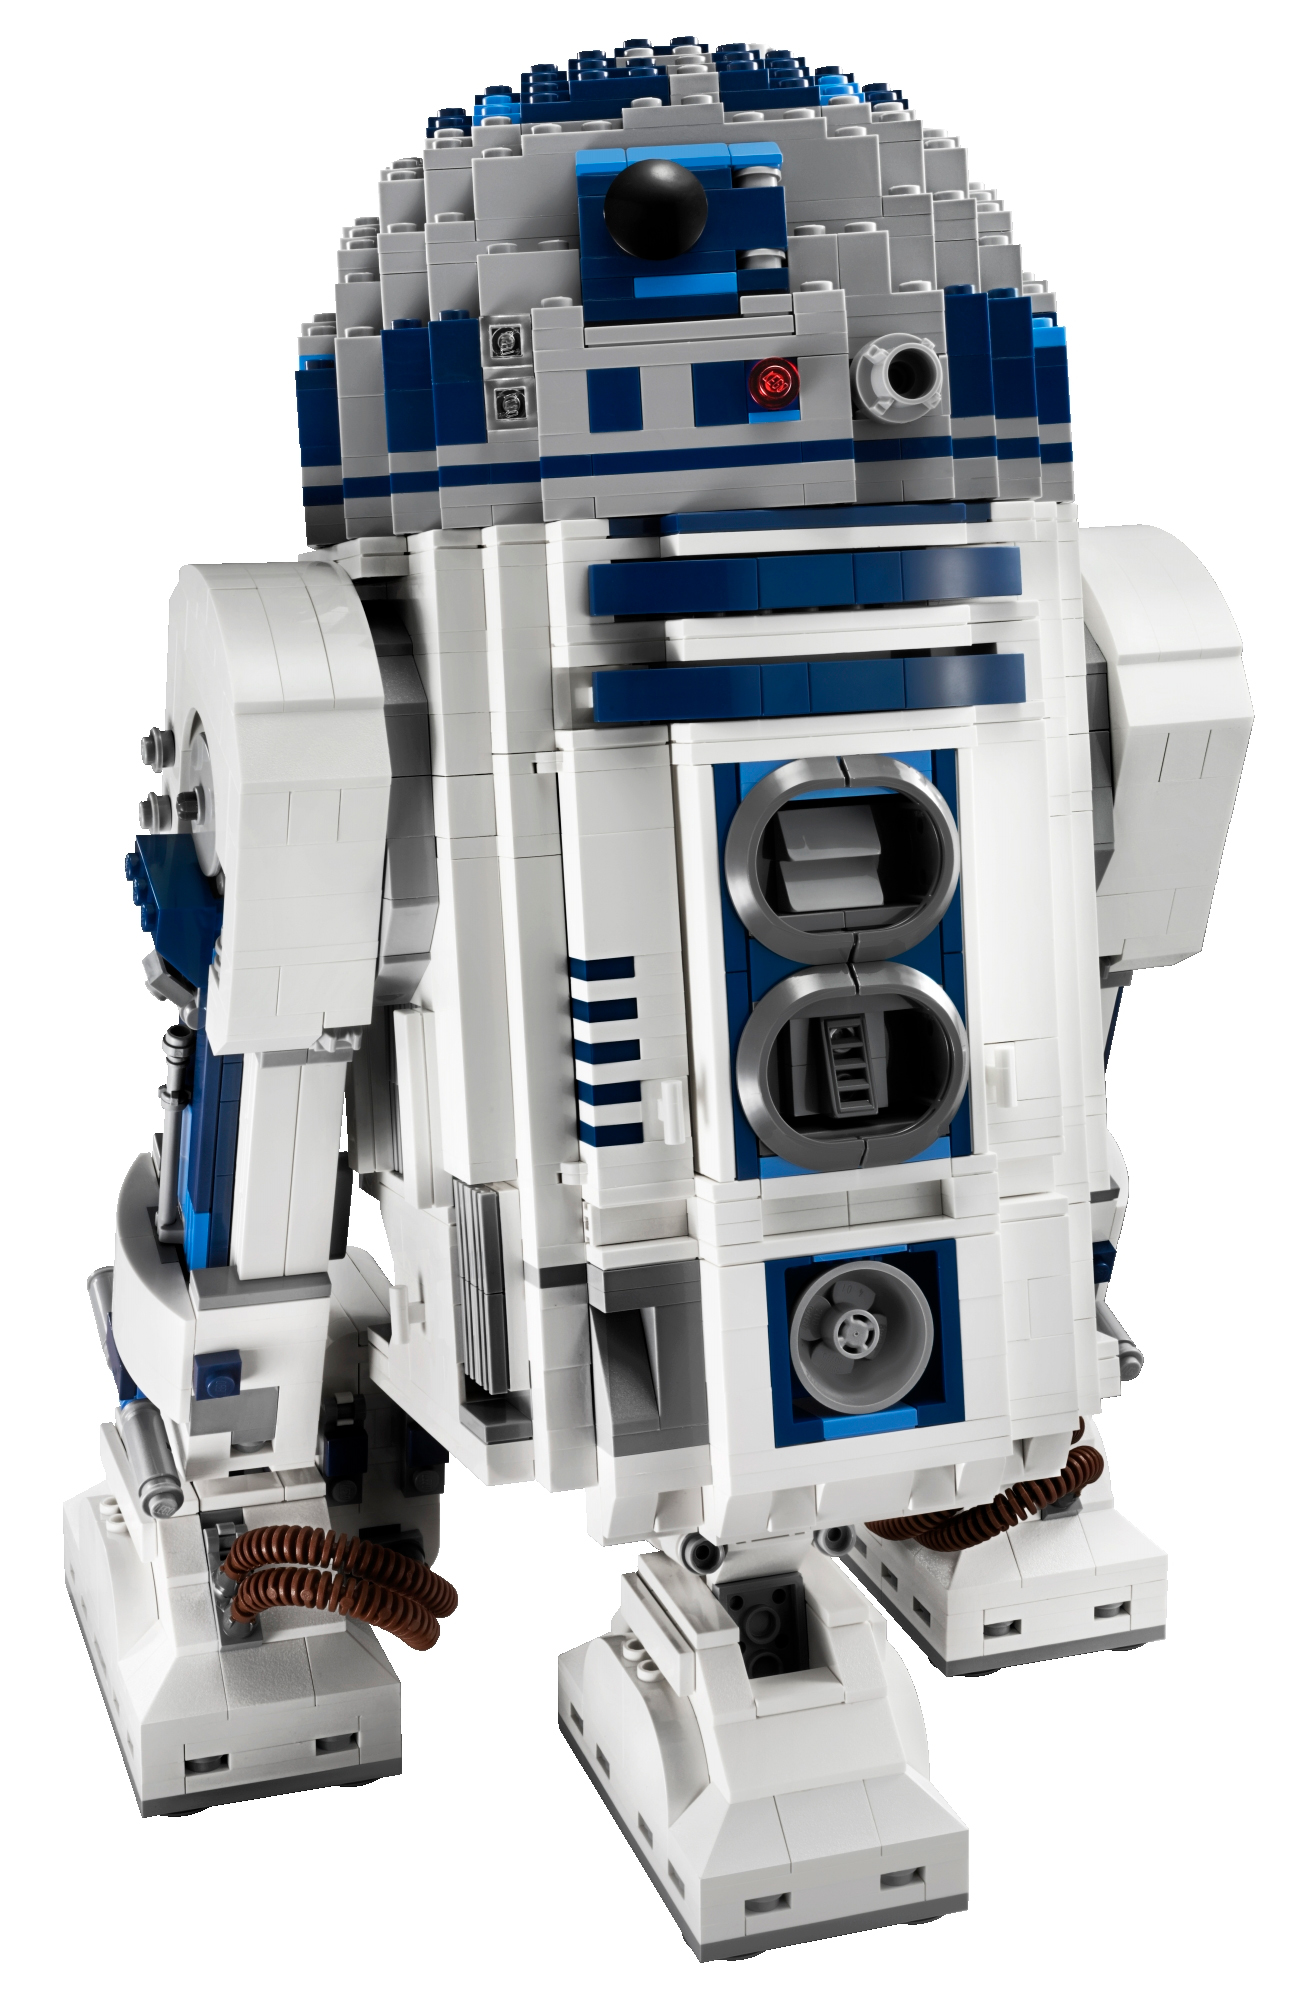 Lego 10225 UCS R2-D2 - Alternate View 1